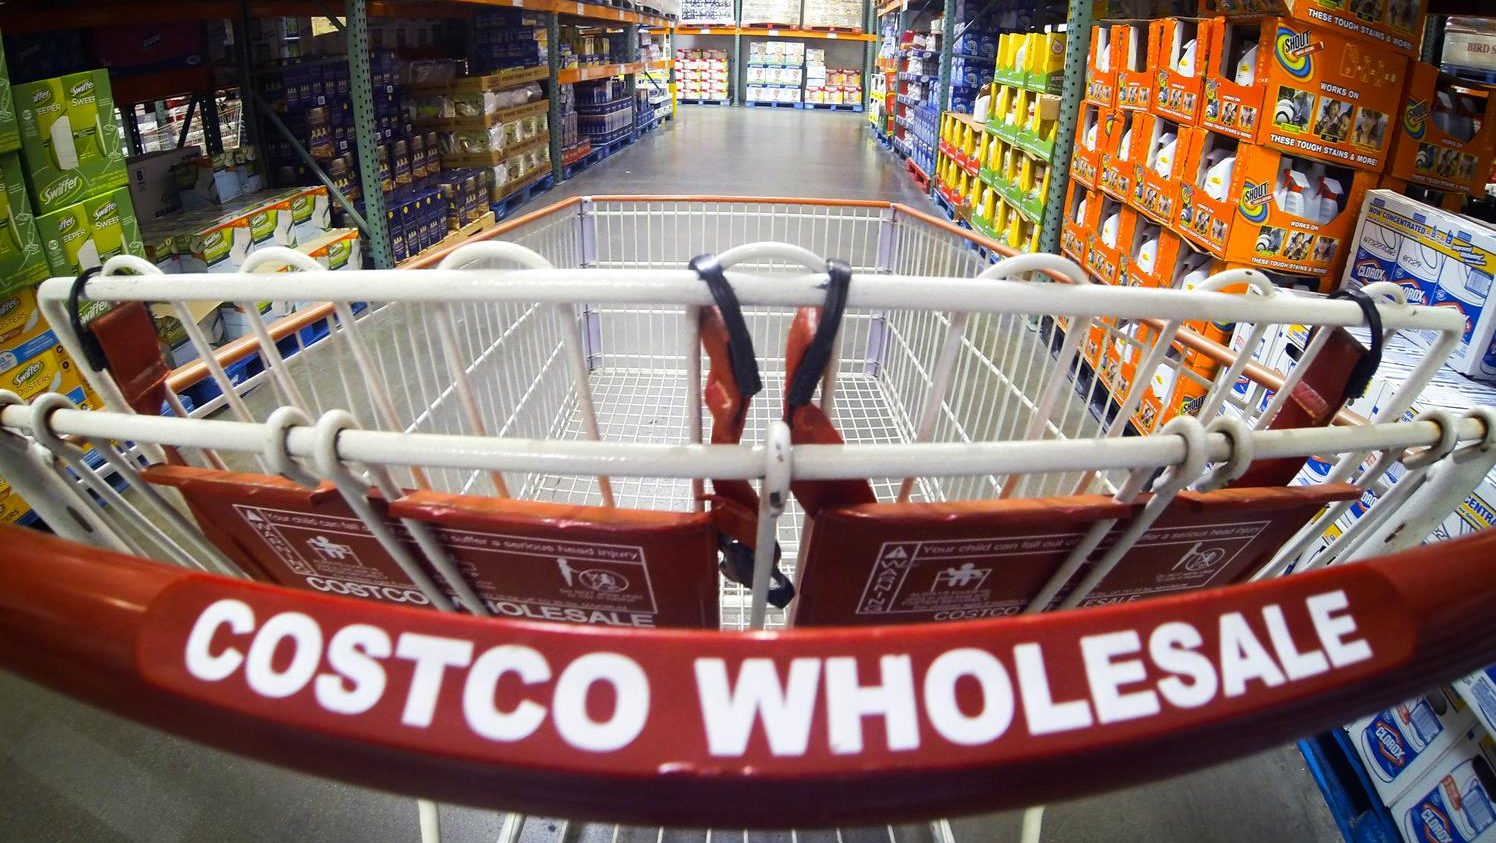 10 Mind Blowing Facts About Costco Wholesale